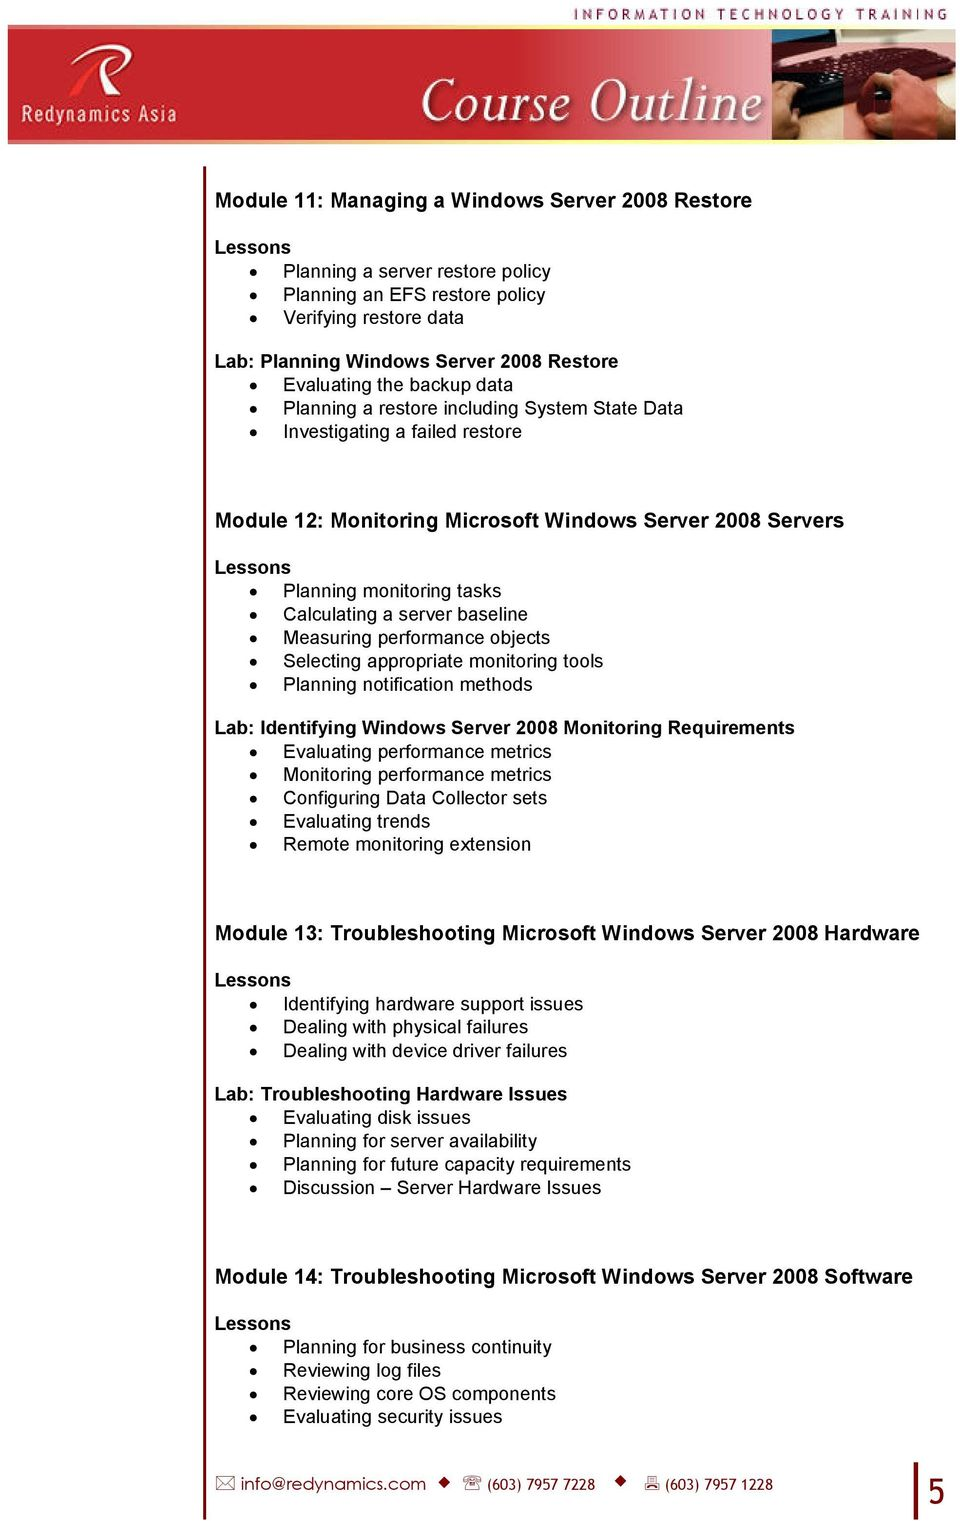 baseline Measuring performance objects Selecting appropriate monitoring tools Planning notification methods Lab: Identifying Windows Server 2008 Monitoring Requirements Evaluating performance metrics